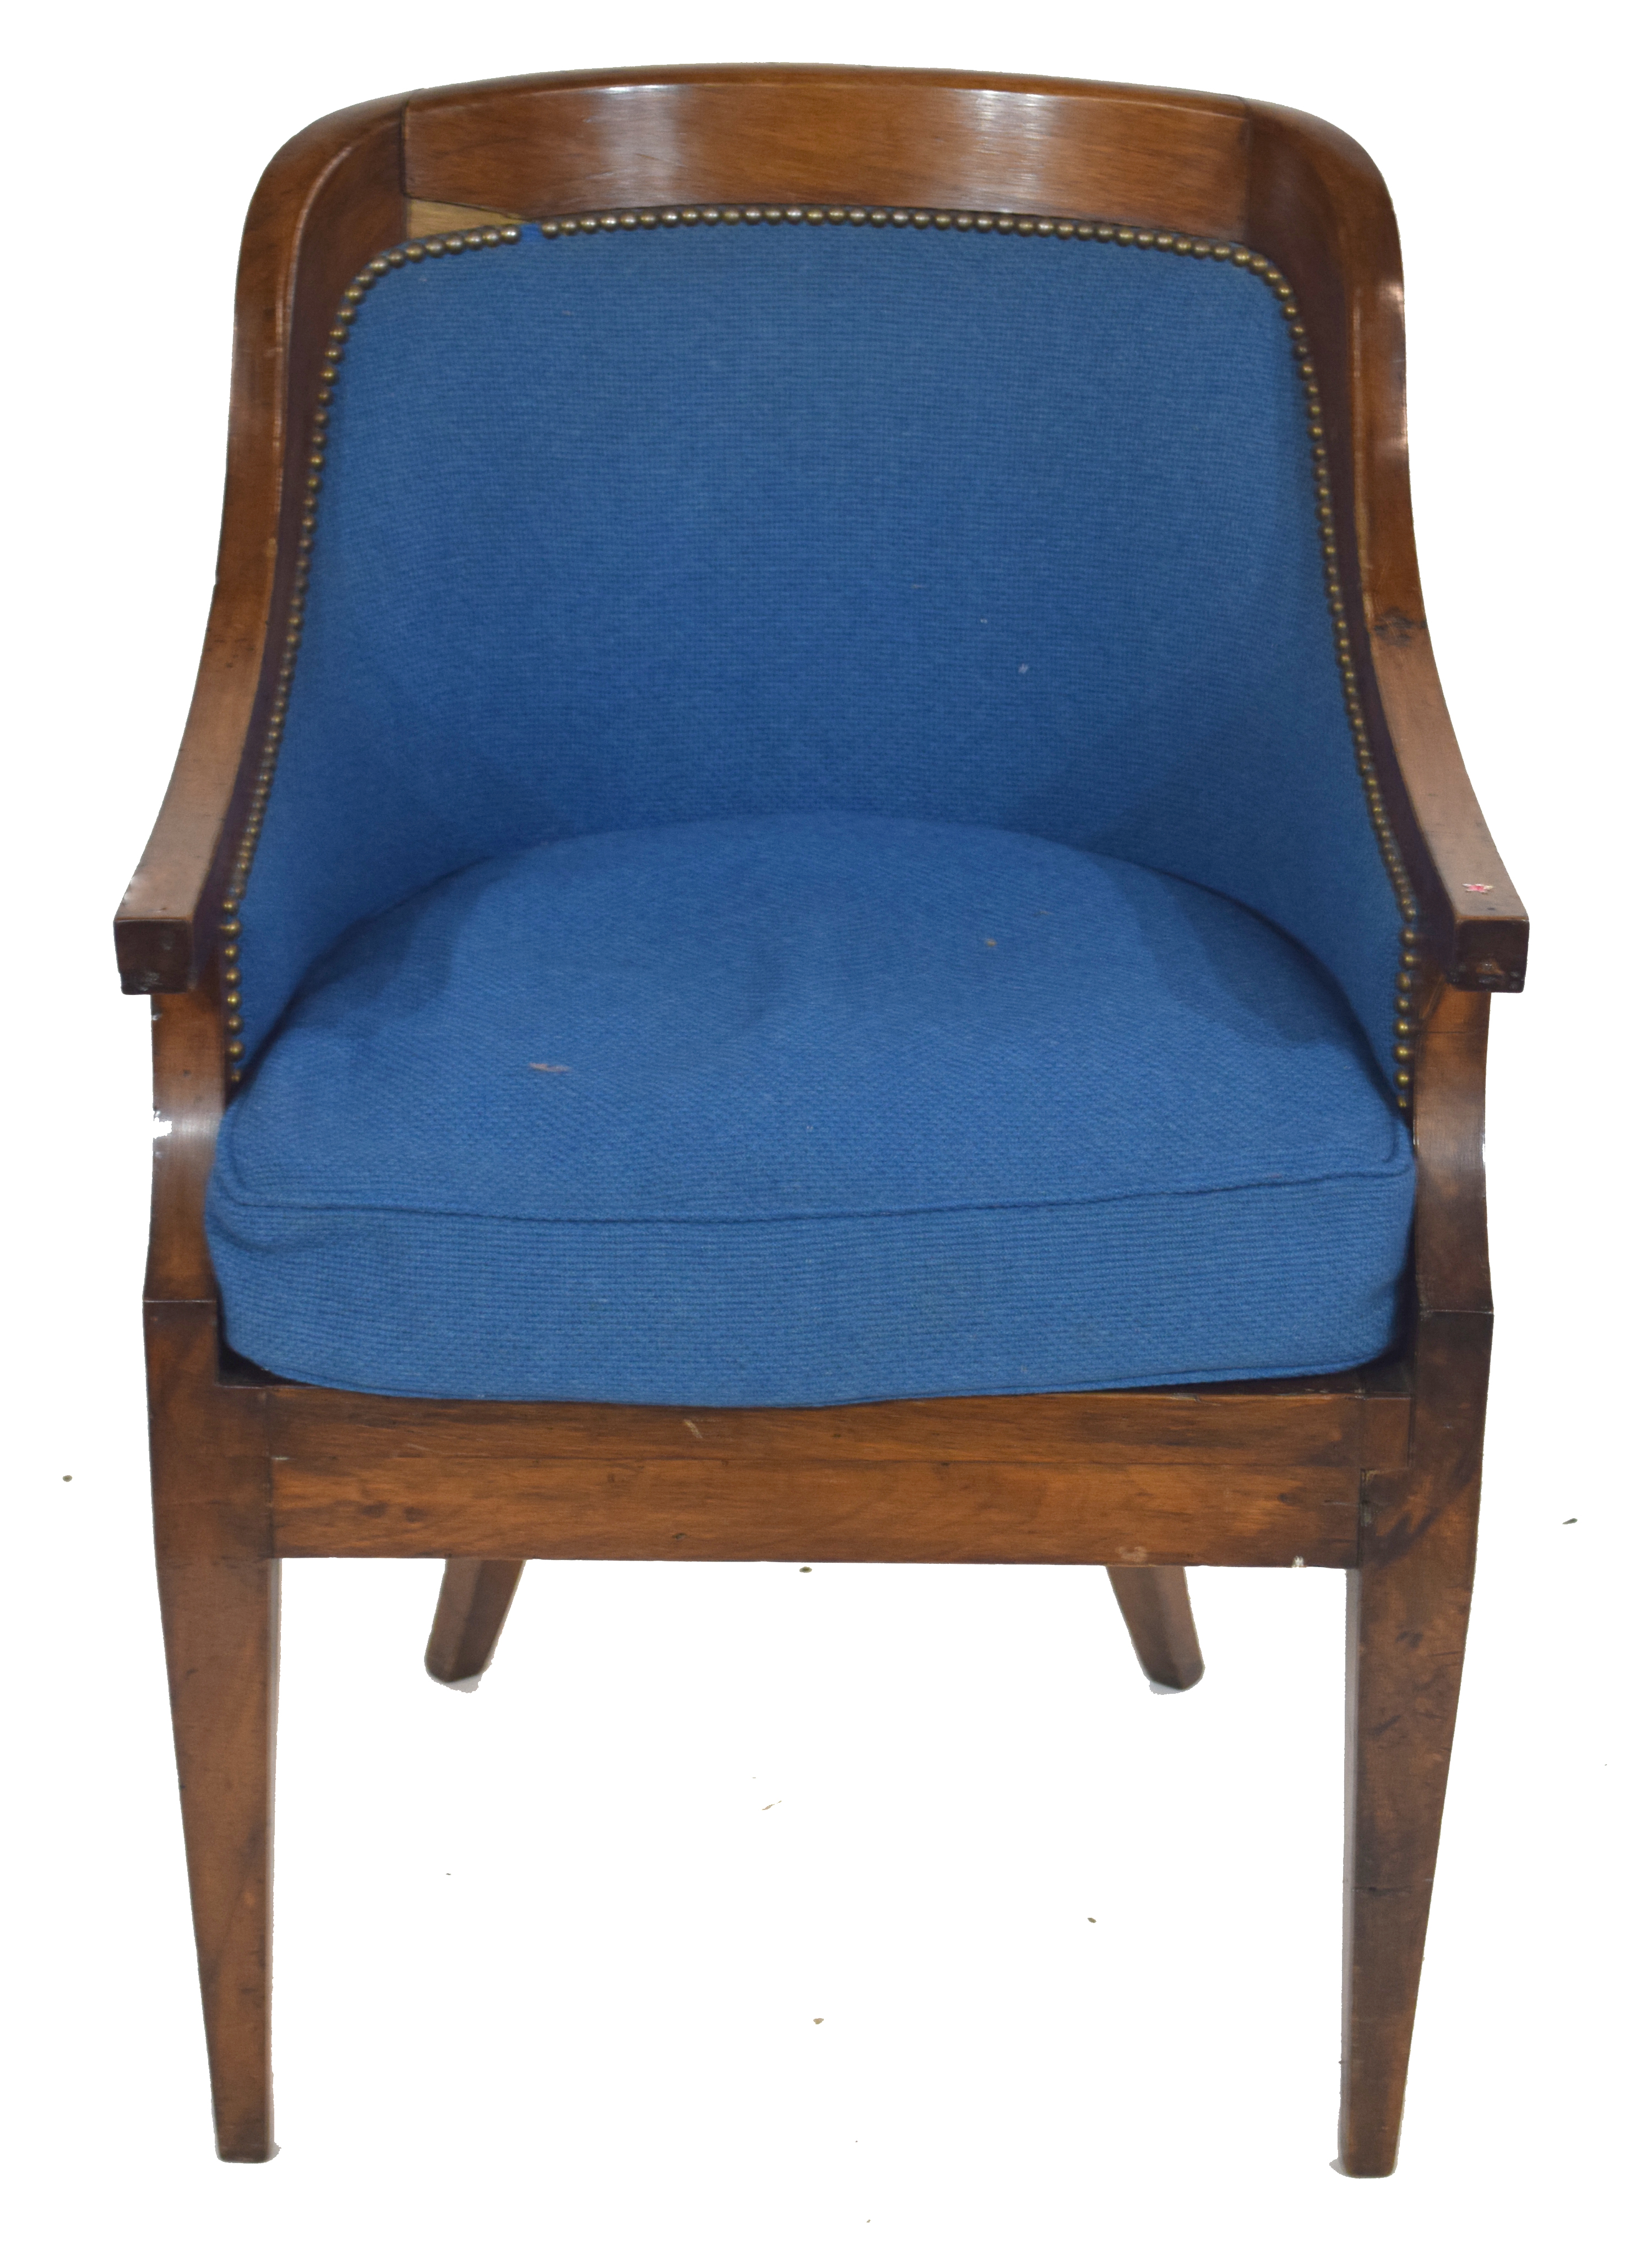 Late 19th/early 20th century mahogany framed tub chair with blue upholstery, 58cm wide Condition: